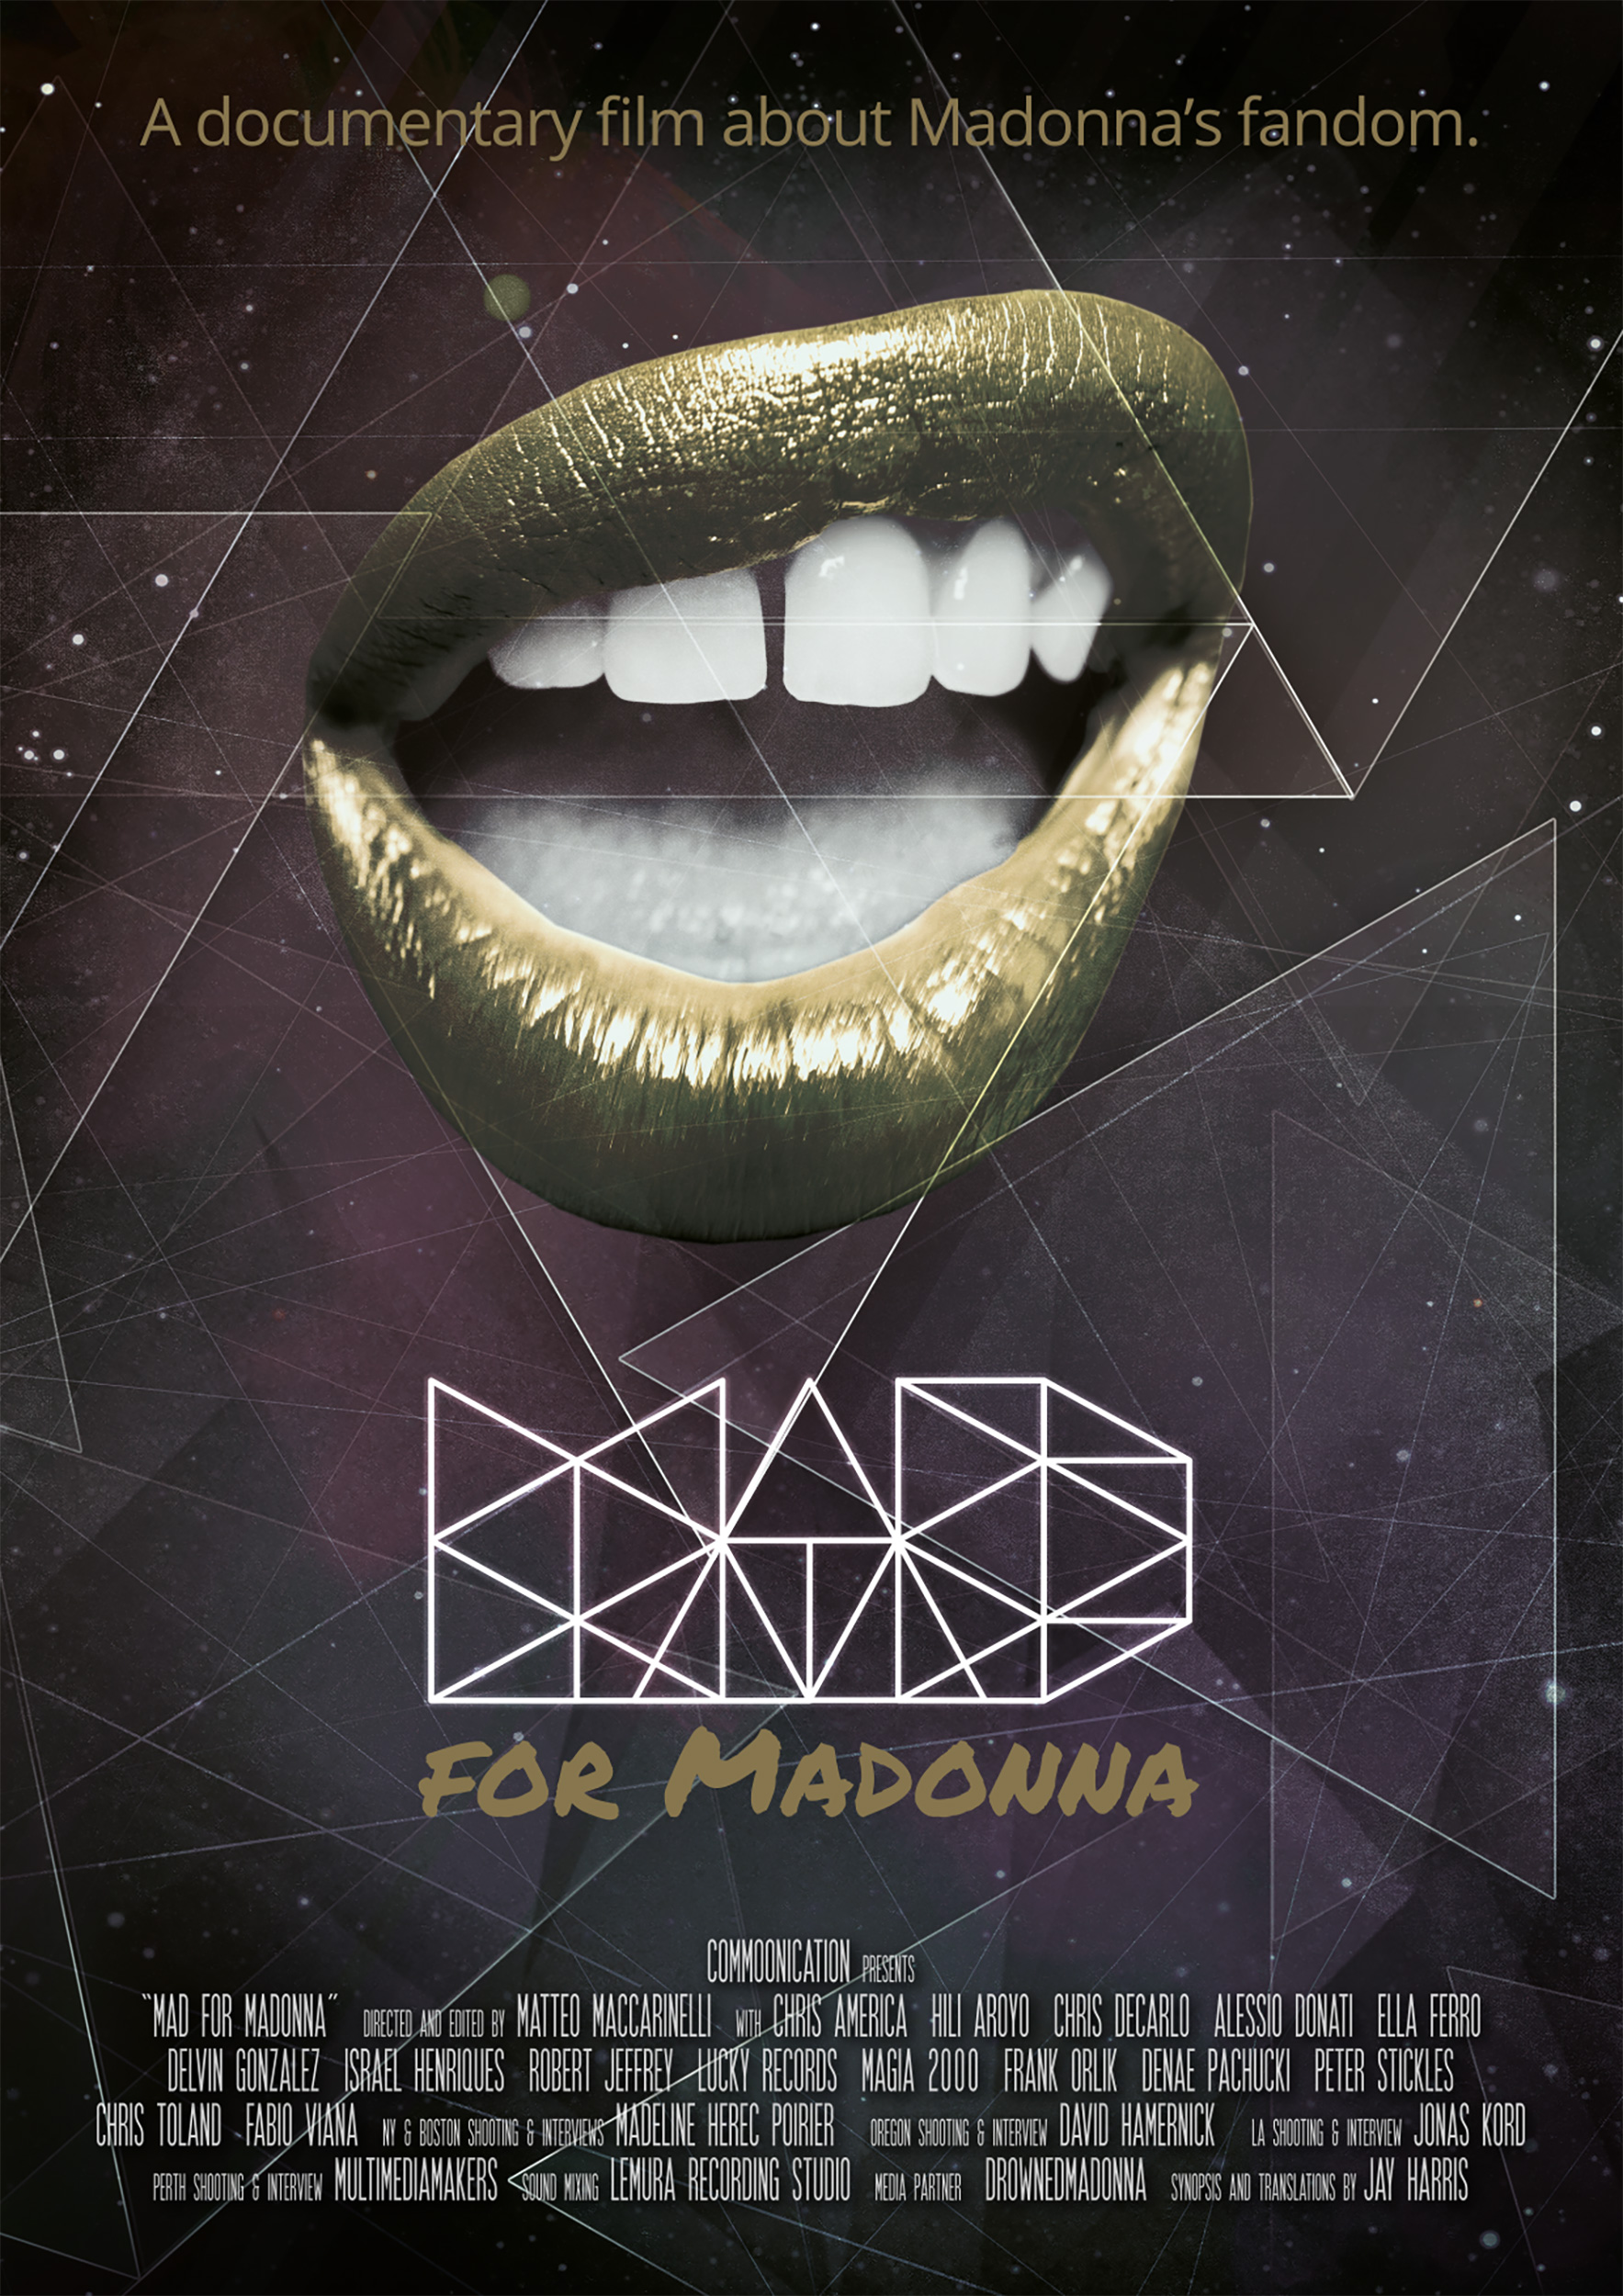 MAD_for-Madonna-film-locandina- flyer-1